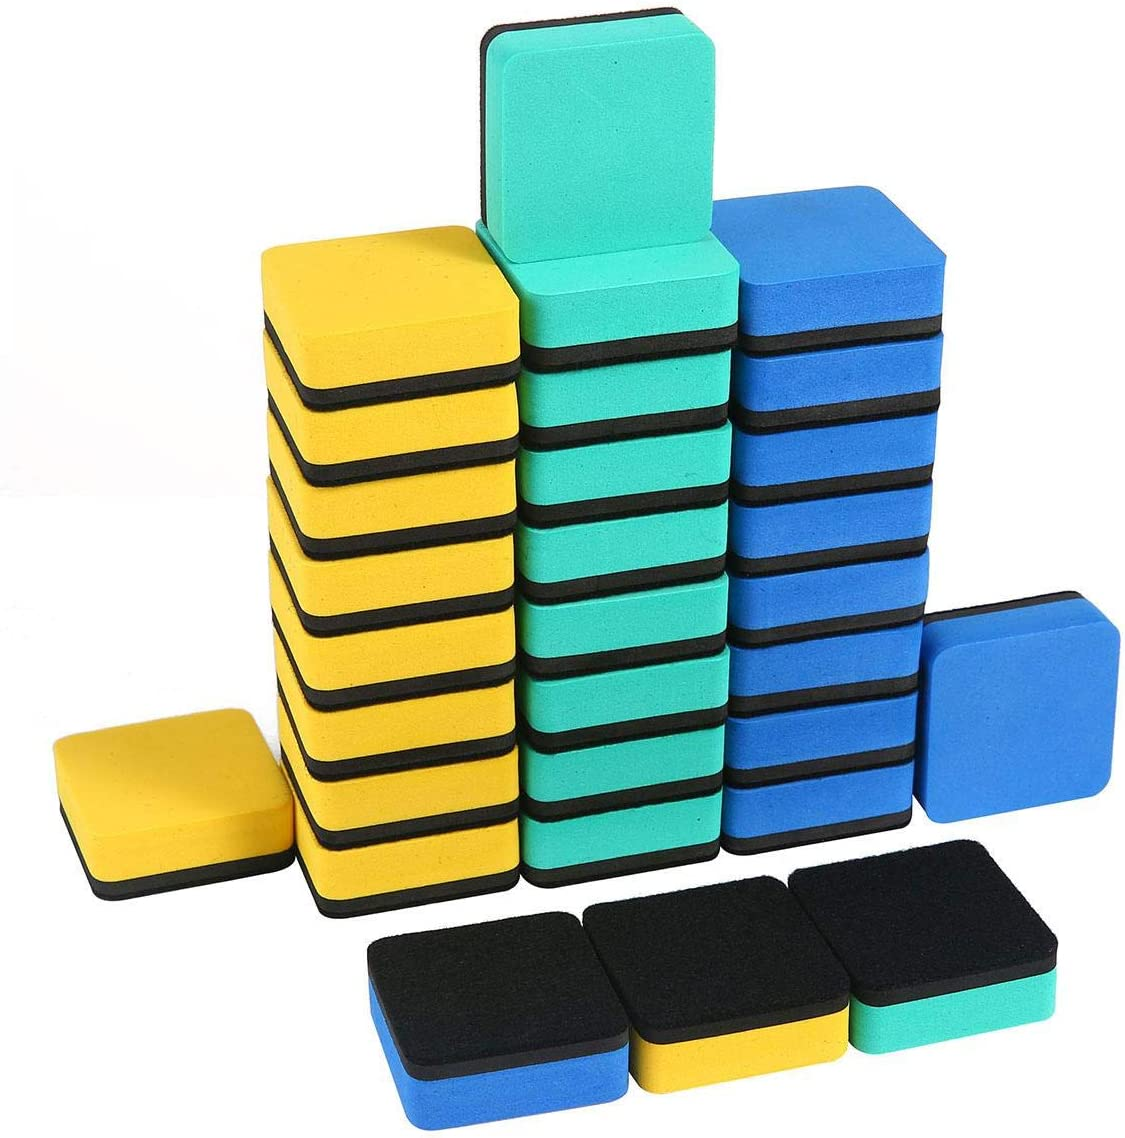 Magnetic Dry Eraser Aolvo 30 Packs Chalkboard Eraser Bulk Mini Whiteboard Eraser Dry Erase Board Eraser For Kids Students Teachers At Classroom School Office Home 2x2 Inch 3 Colors Amazon Ca Office Products